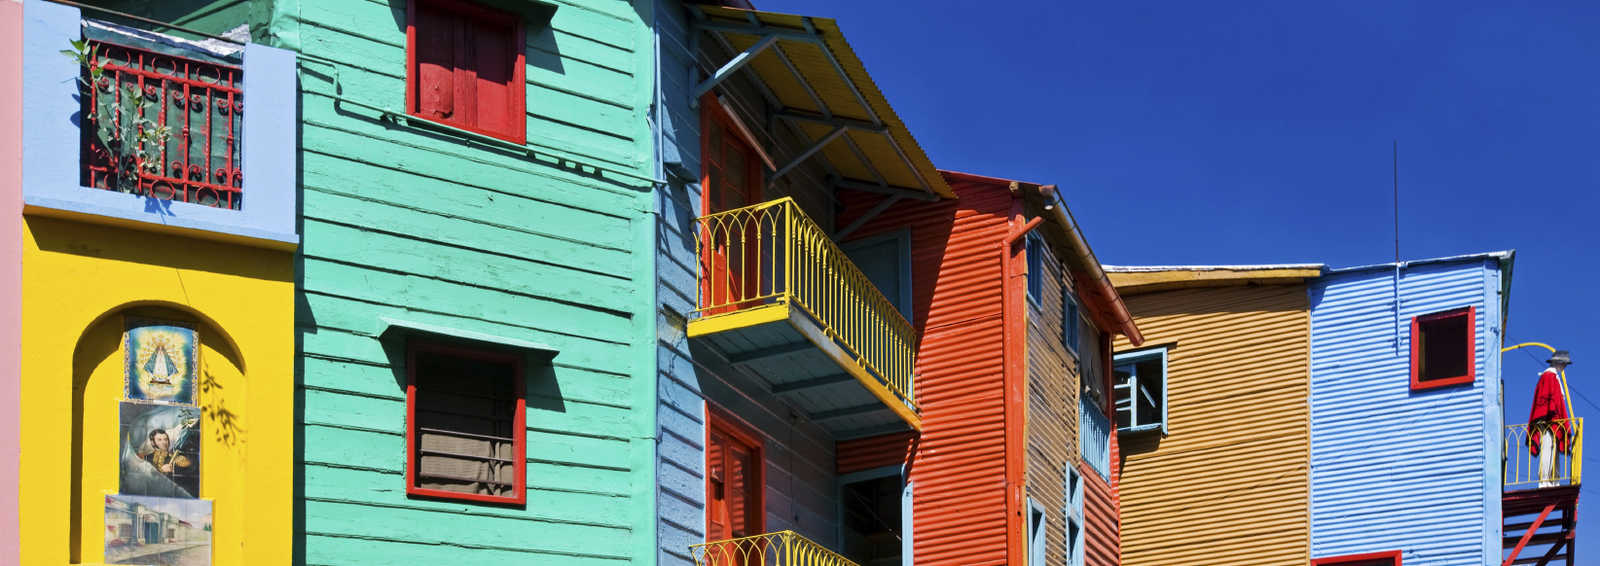 Colourful Houses in La Boca, Buenos Aires, Argentina